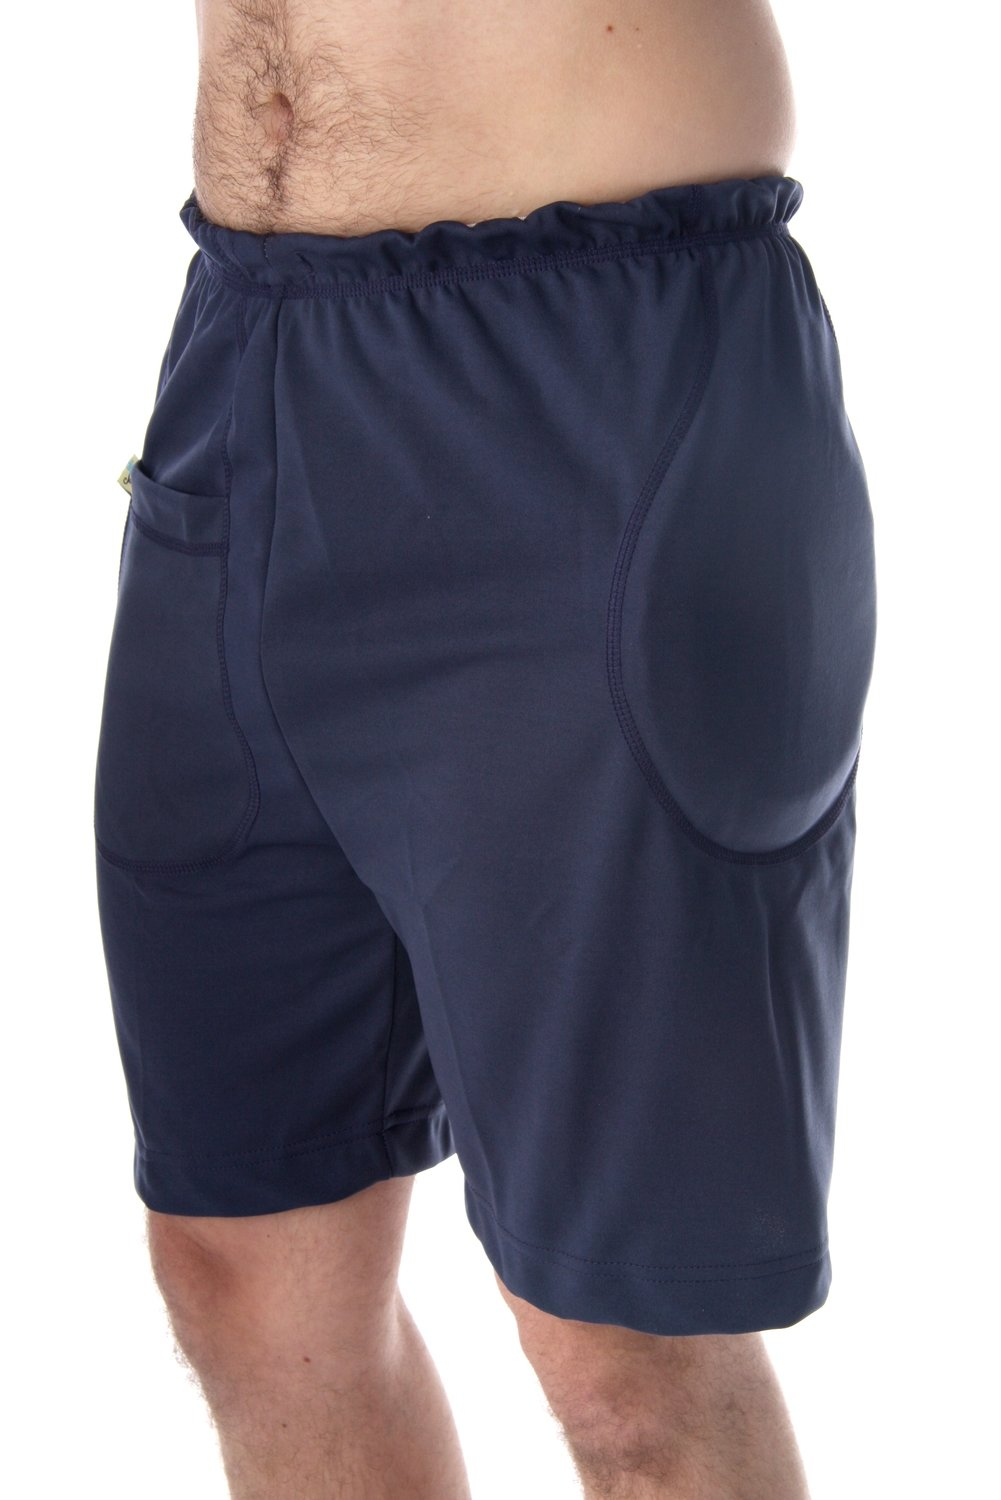 HipSaver Hip Fractures  Protector Shorts